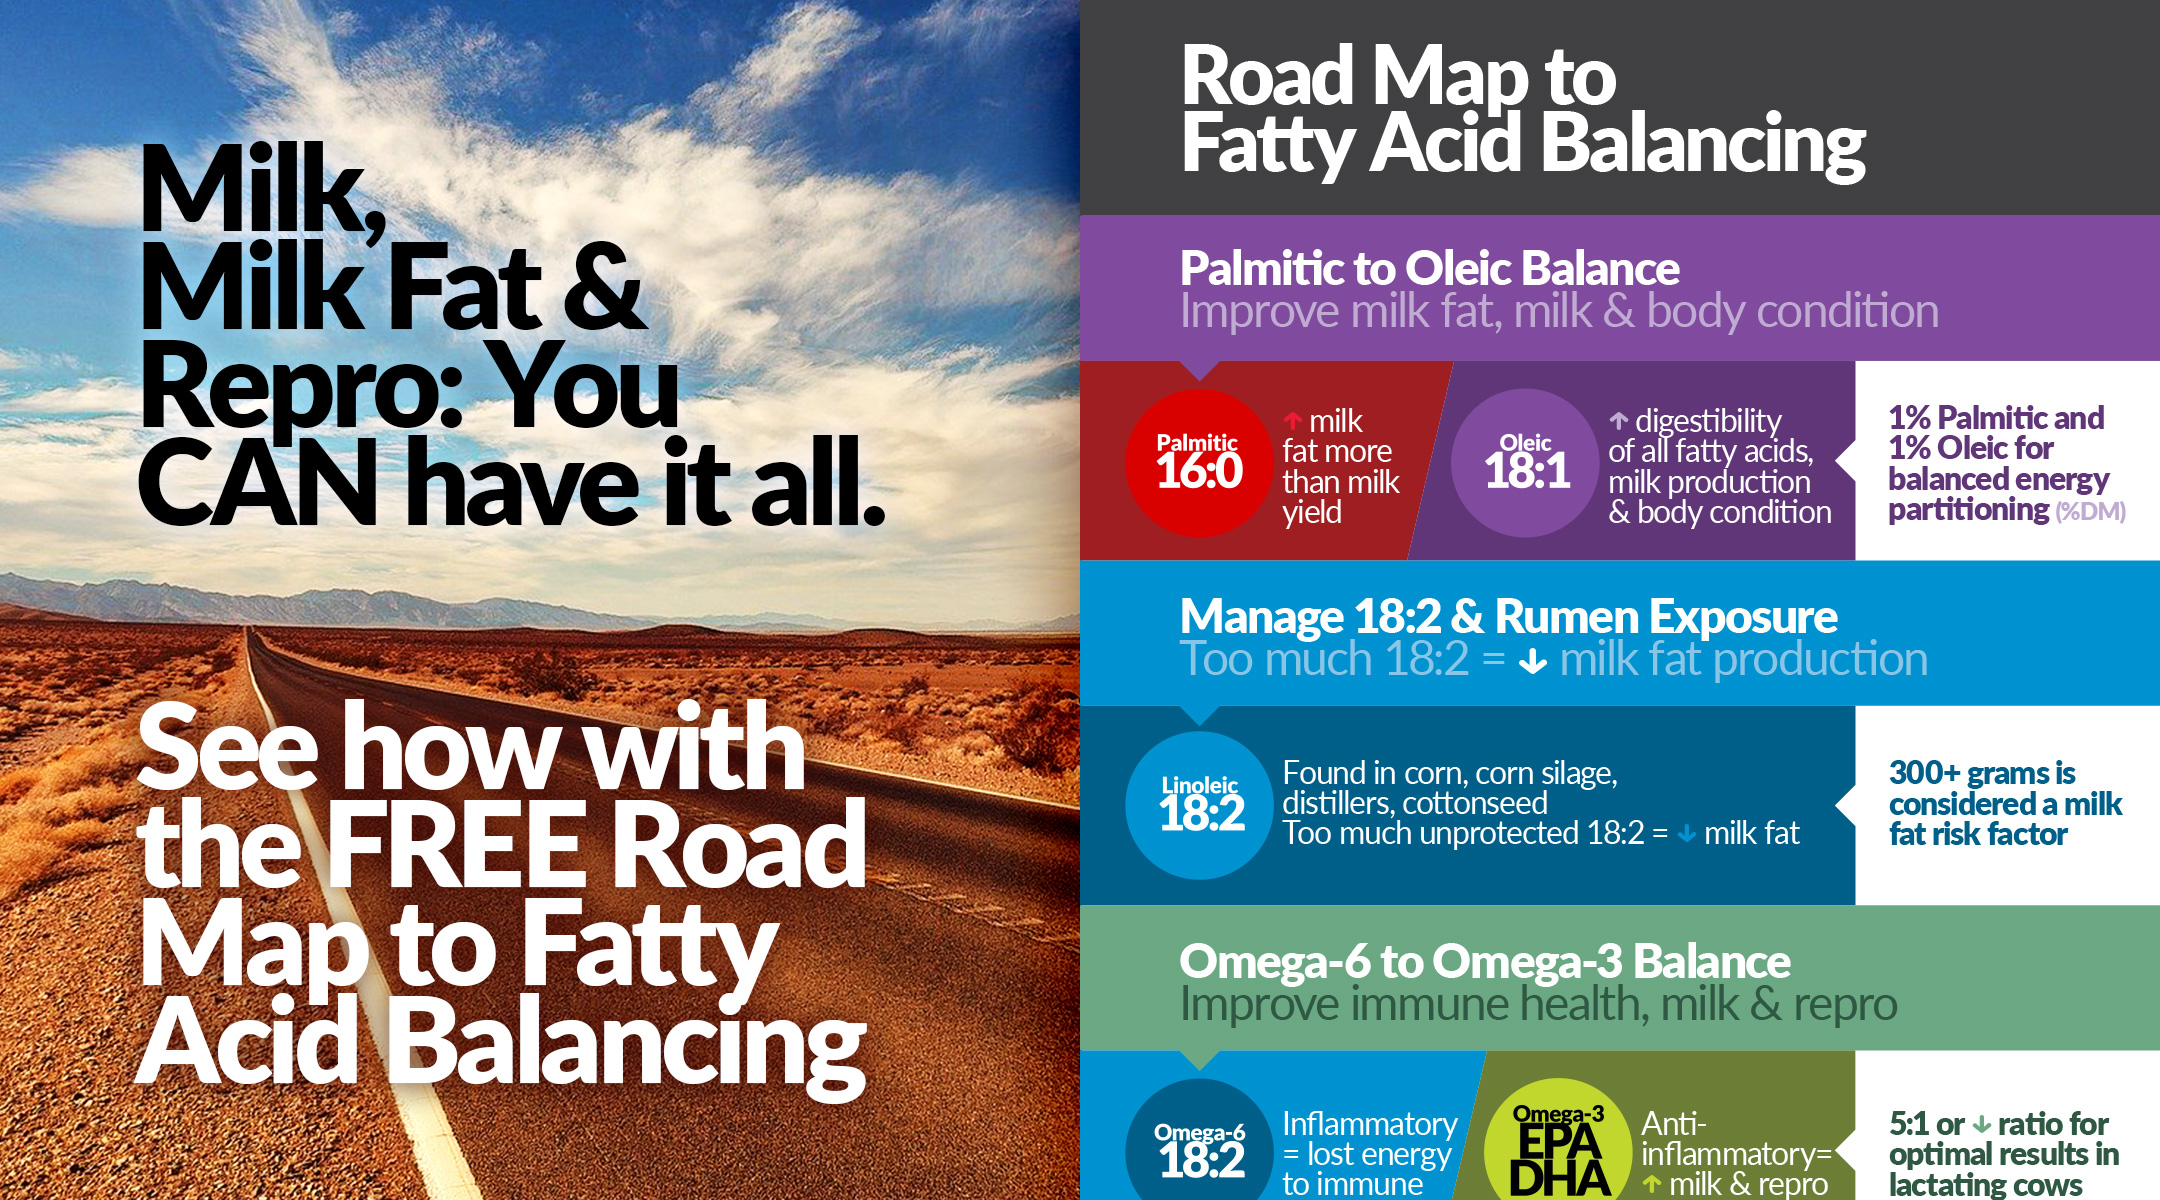 See the Road Map to Fatty Acid Balancing